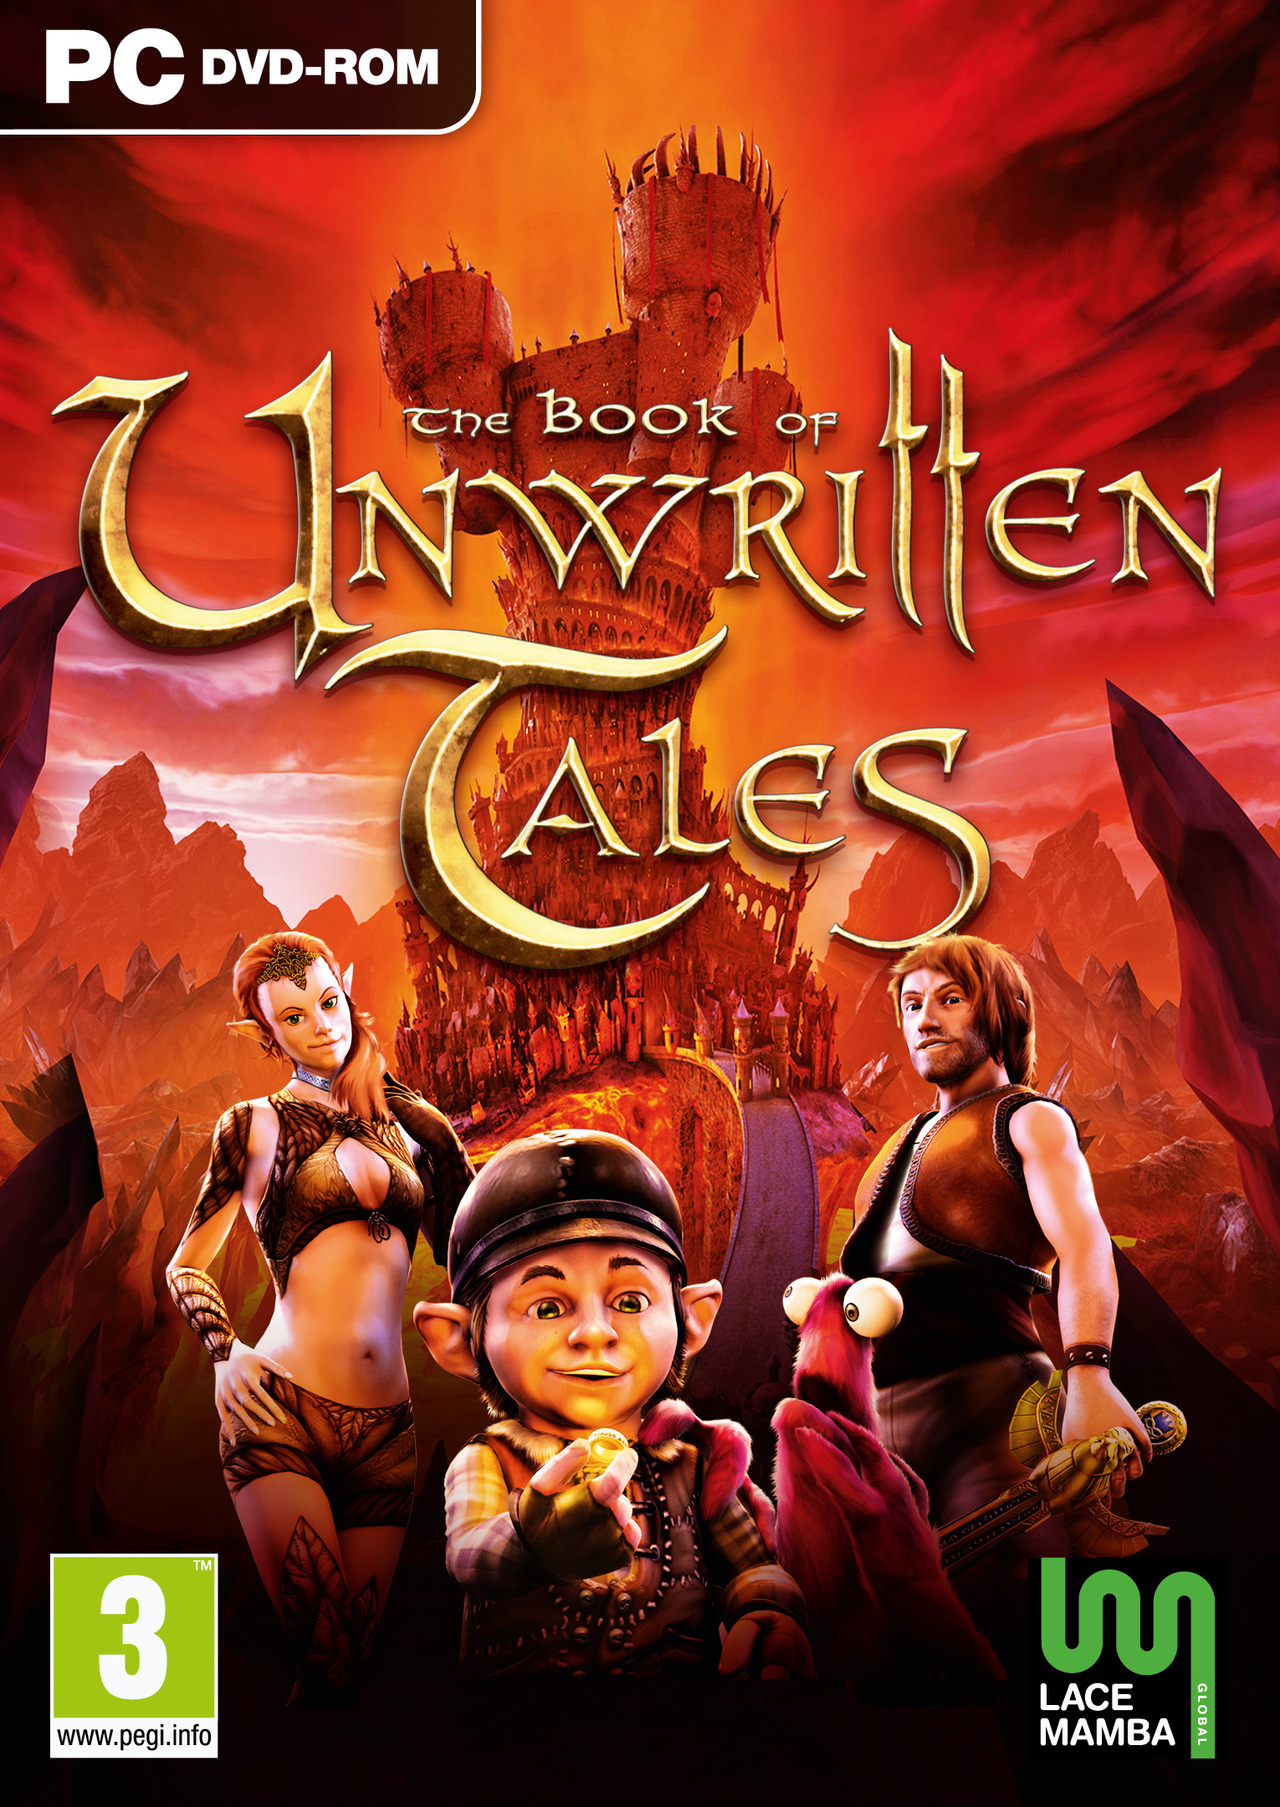 [MULTI] The Book of Unwritten Tales Digital Deluxe Edition [PC] [Multi-Lang]